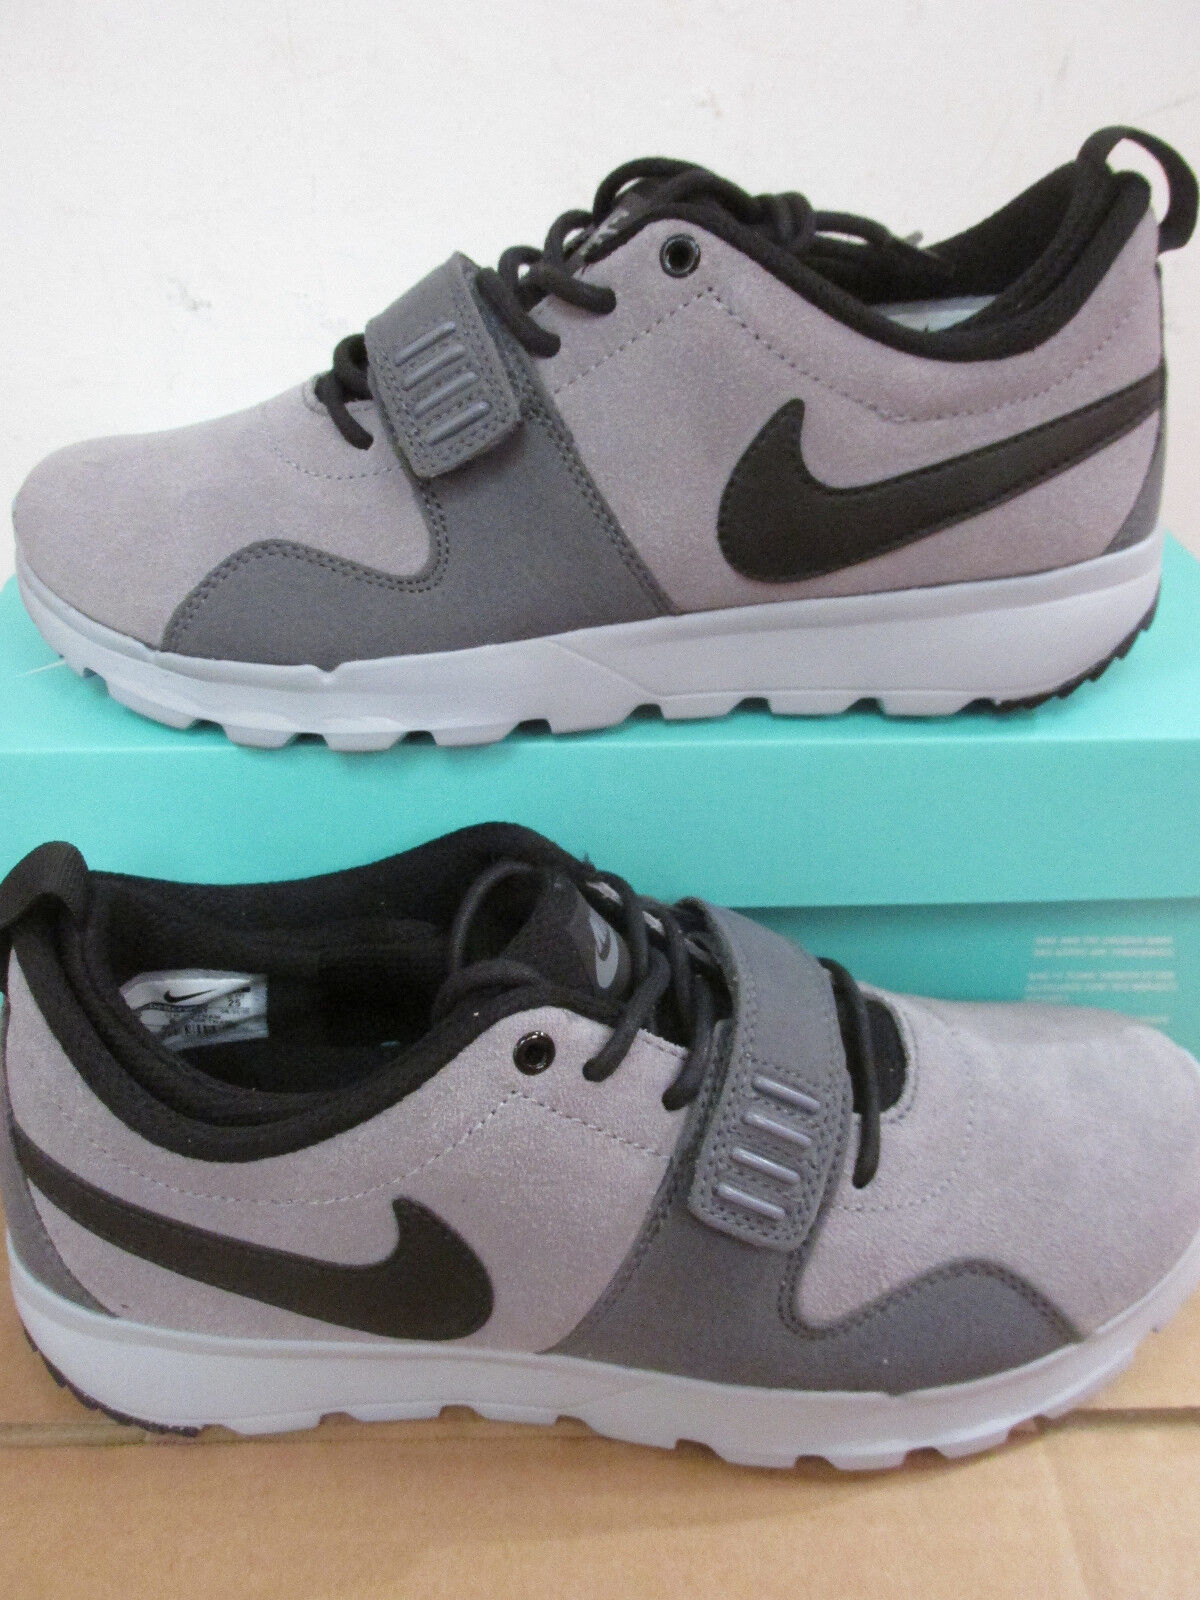 nike SB 001 trainerendor Hombre trainers 806309 001 SB sneakers Zapatos CLEARANCE b6921b